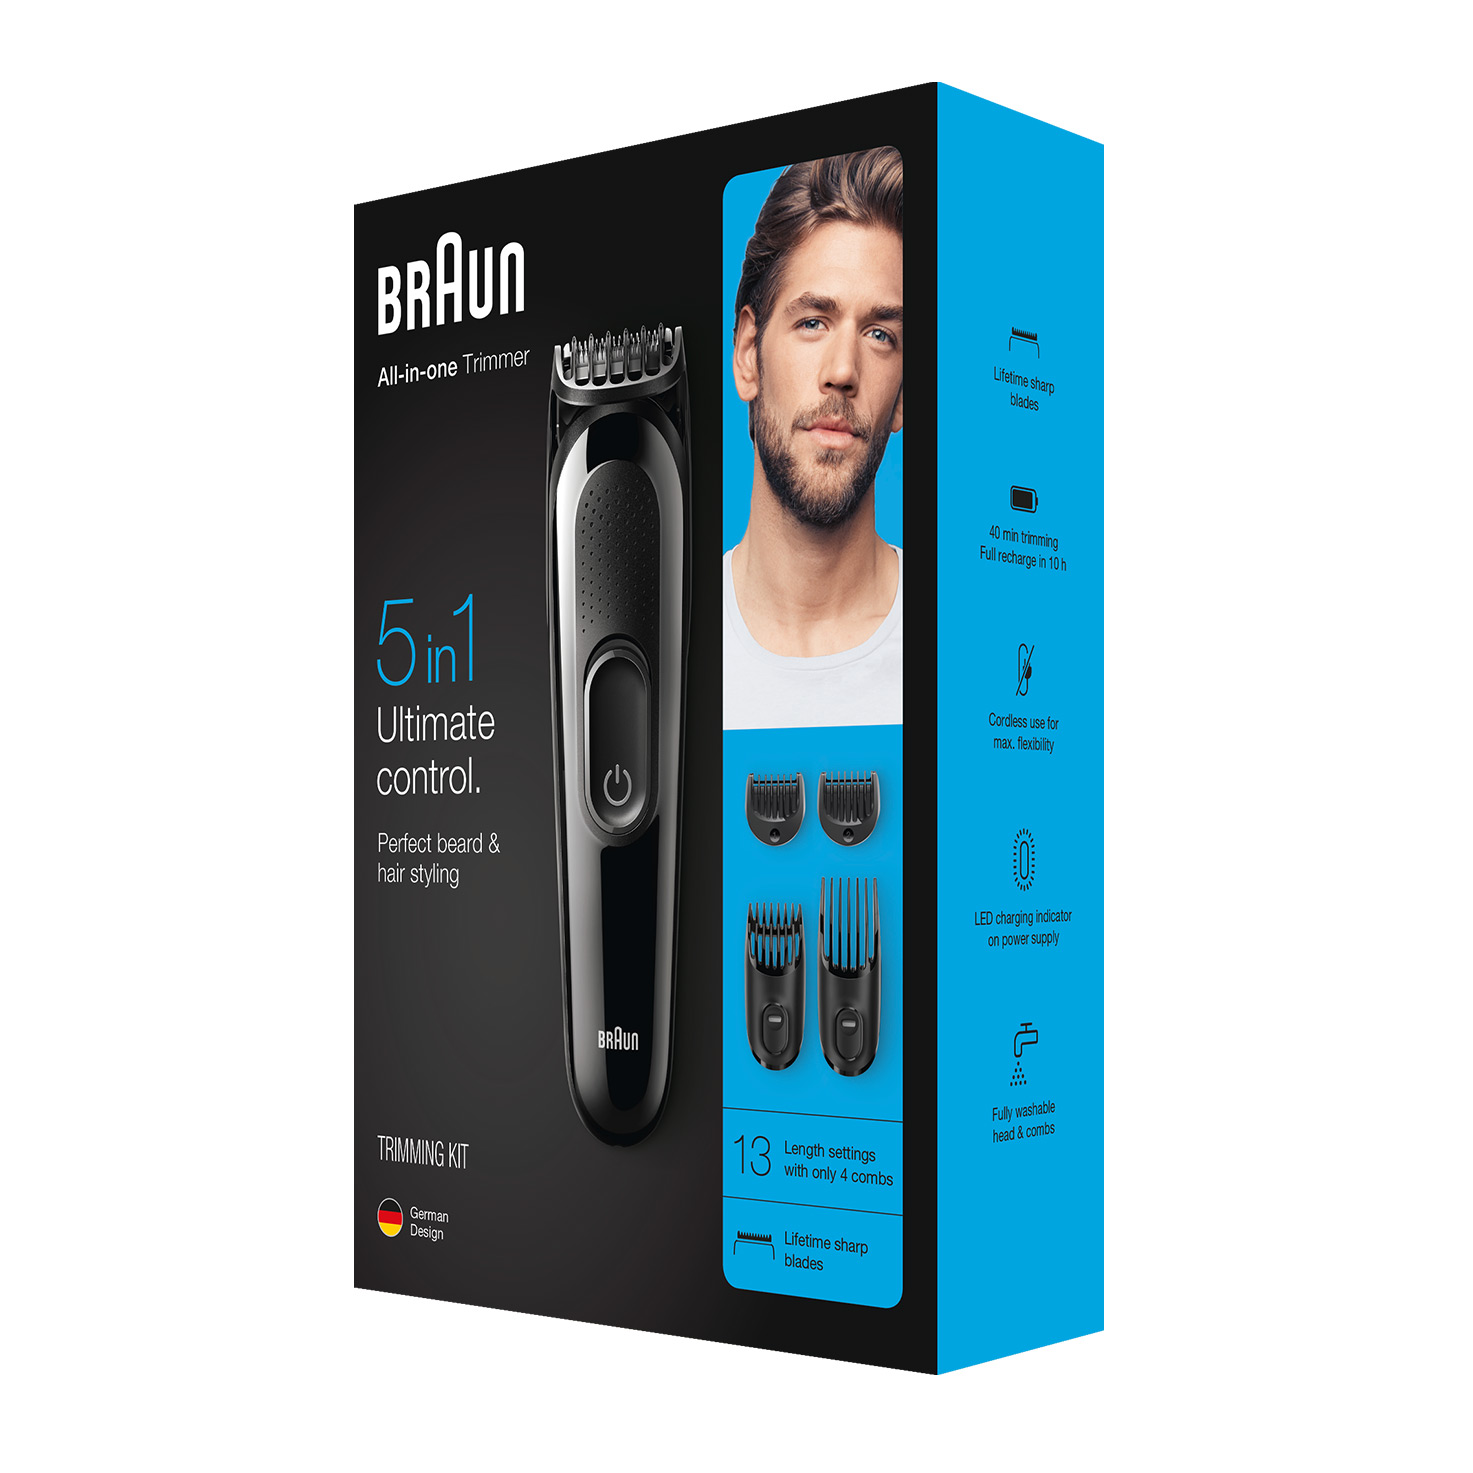 Braun All-in-one trimmer MGK3010